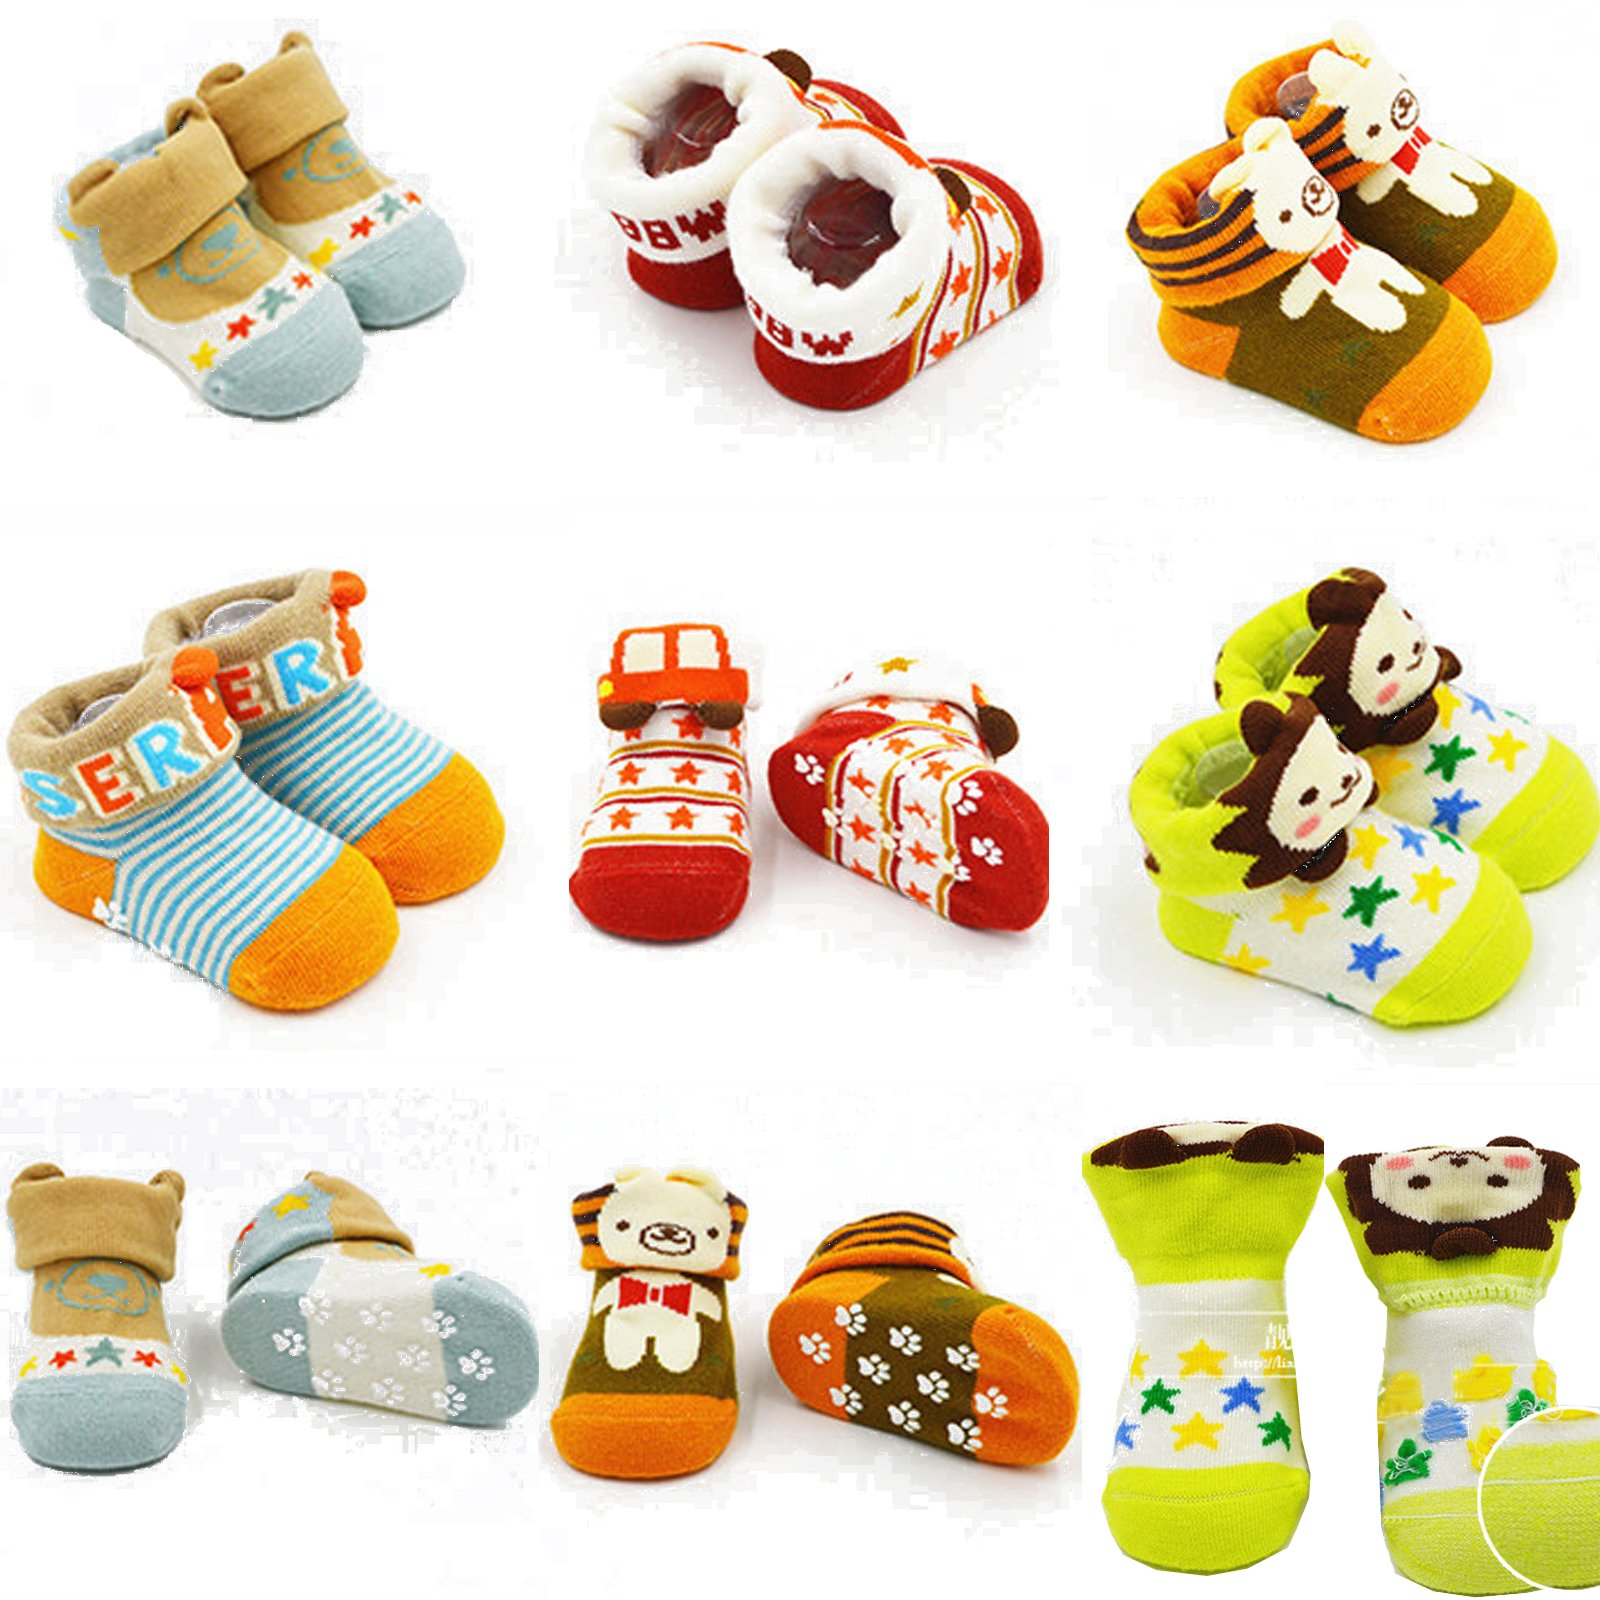 Fly-love® 5pairs Animal Non-Skid Slip Toddler Socks Cotton Unisex Baby Crew Sock 0-18 months With Box by love (Image #4)